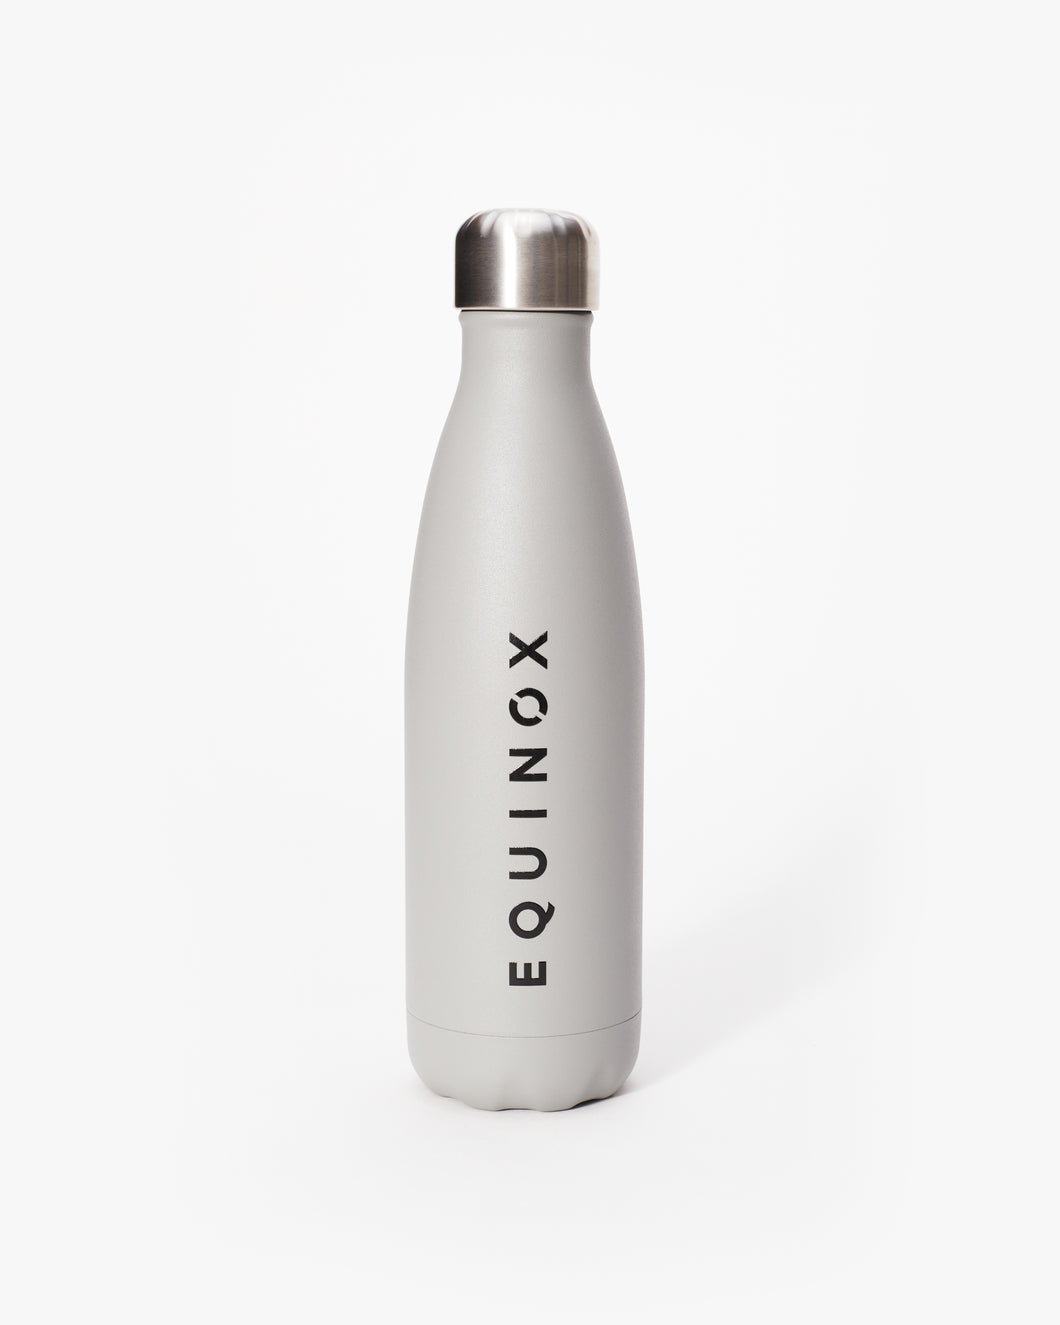 S'WELL EQUINOX WATER BOTTLE 17 OZ. SMOKEY QUARTZ